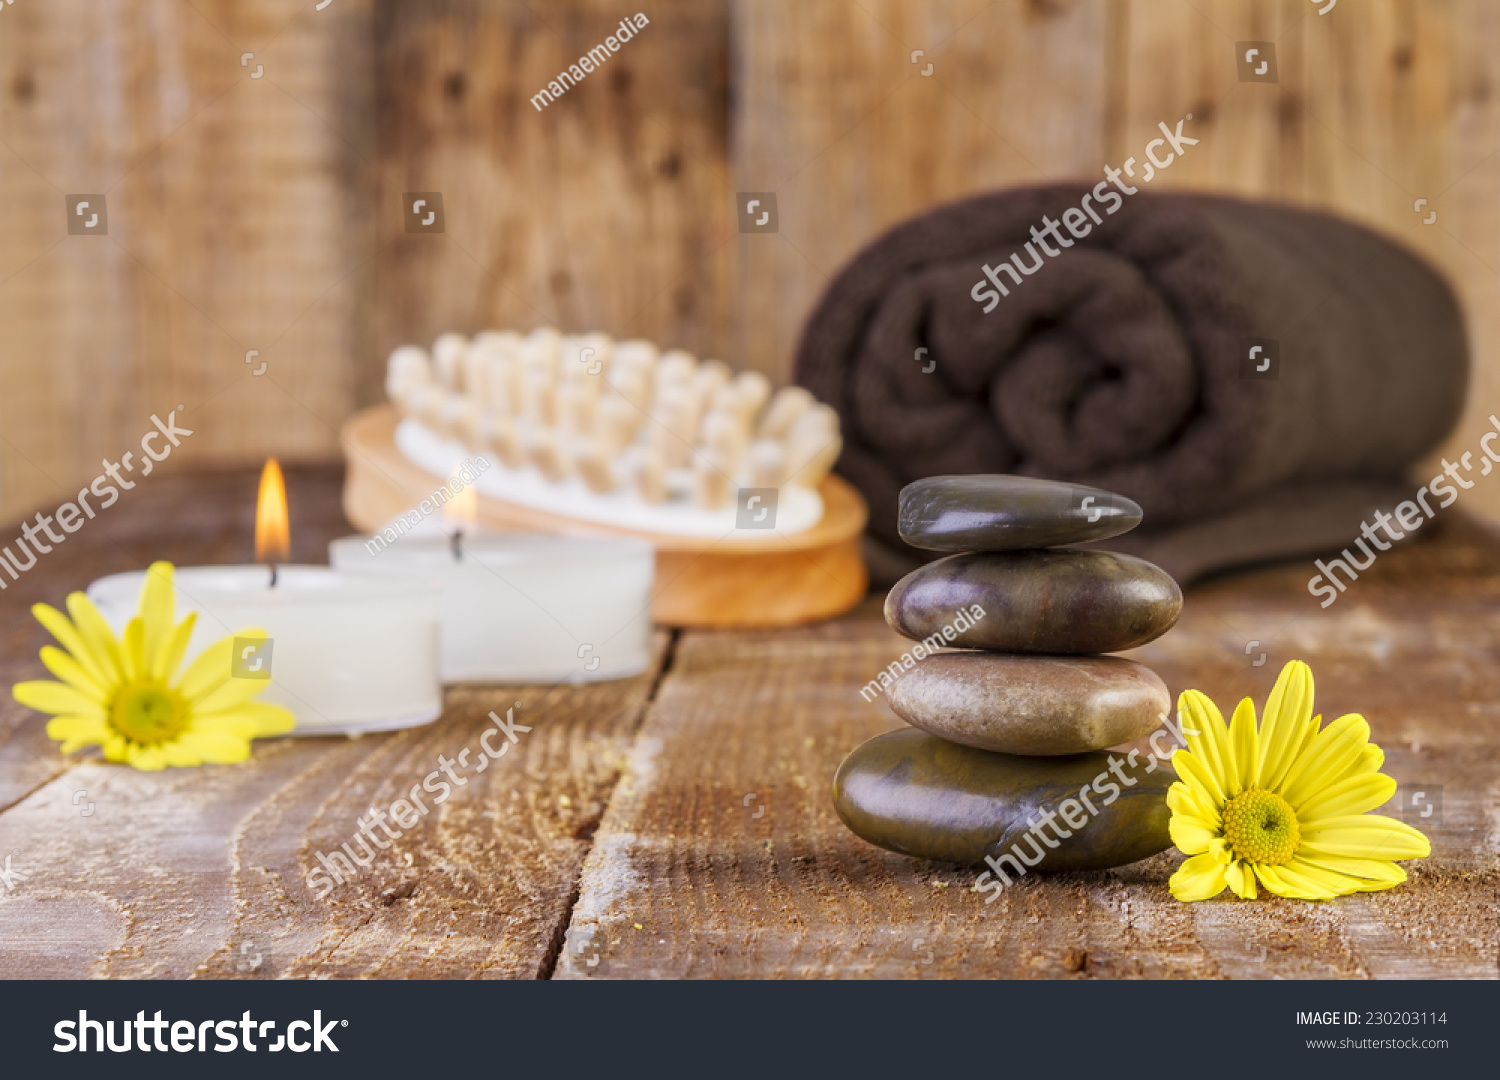 zen basalt stones spa objects candles stock photo   - zen basalt stones and spa objects with candles on the wood